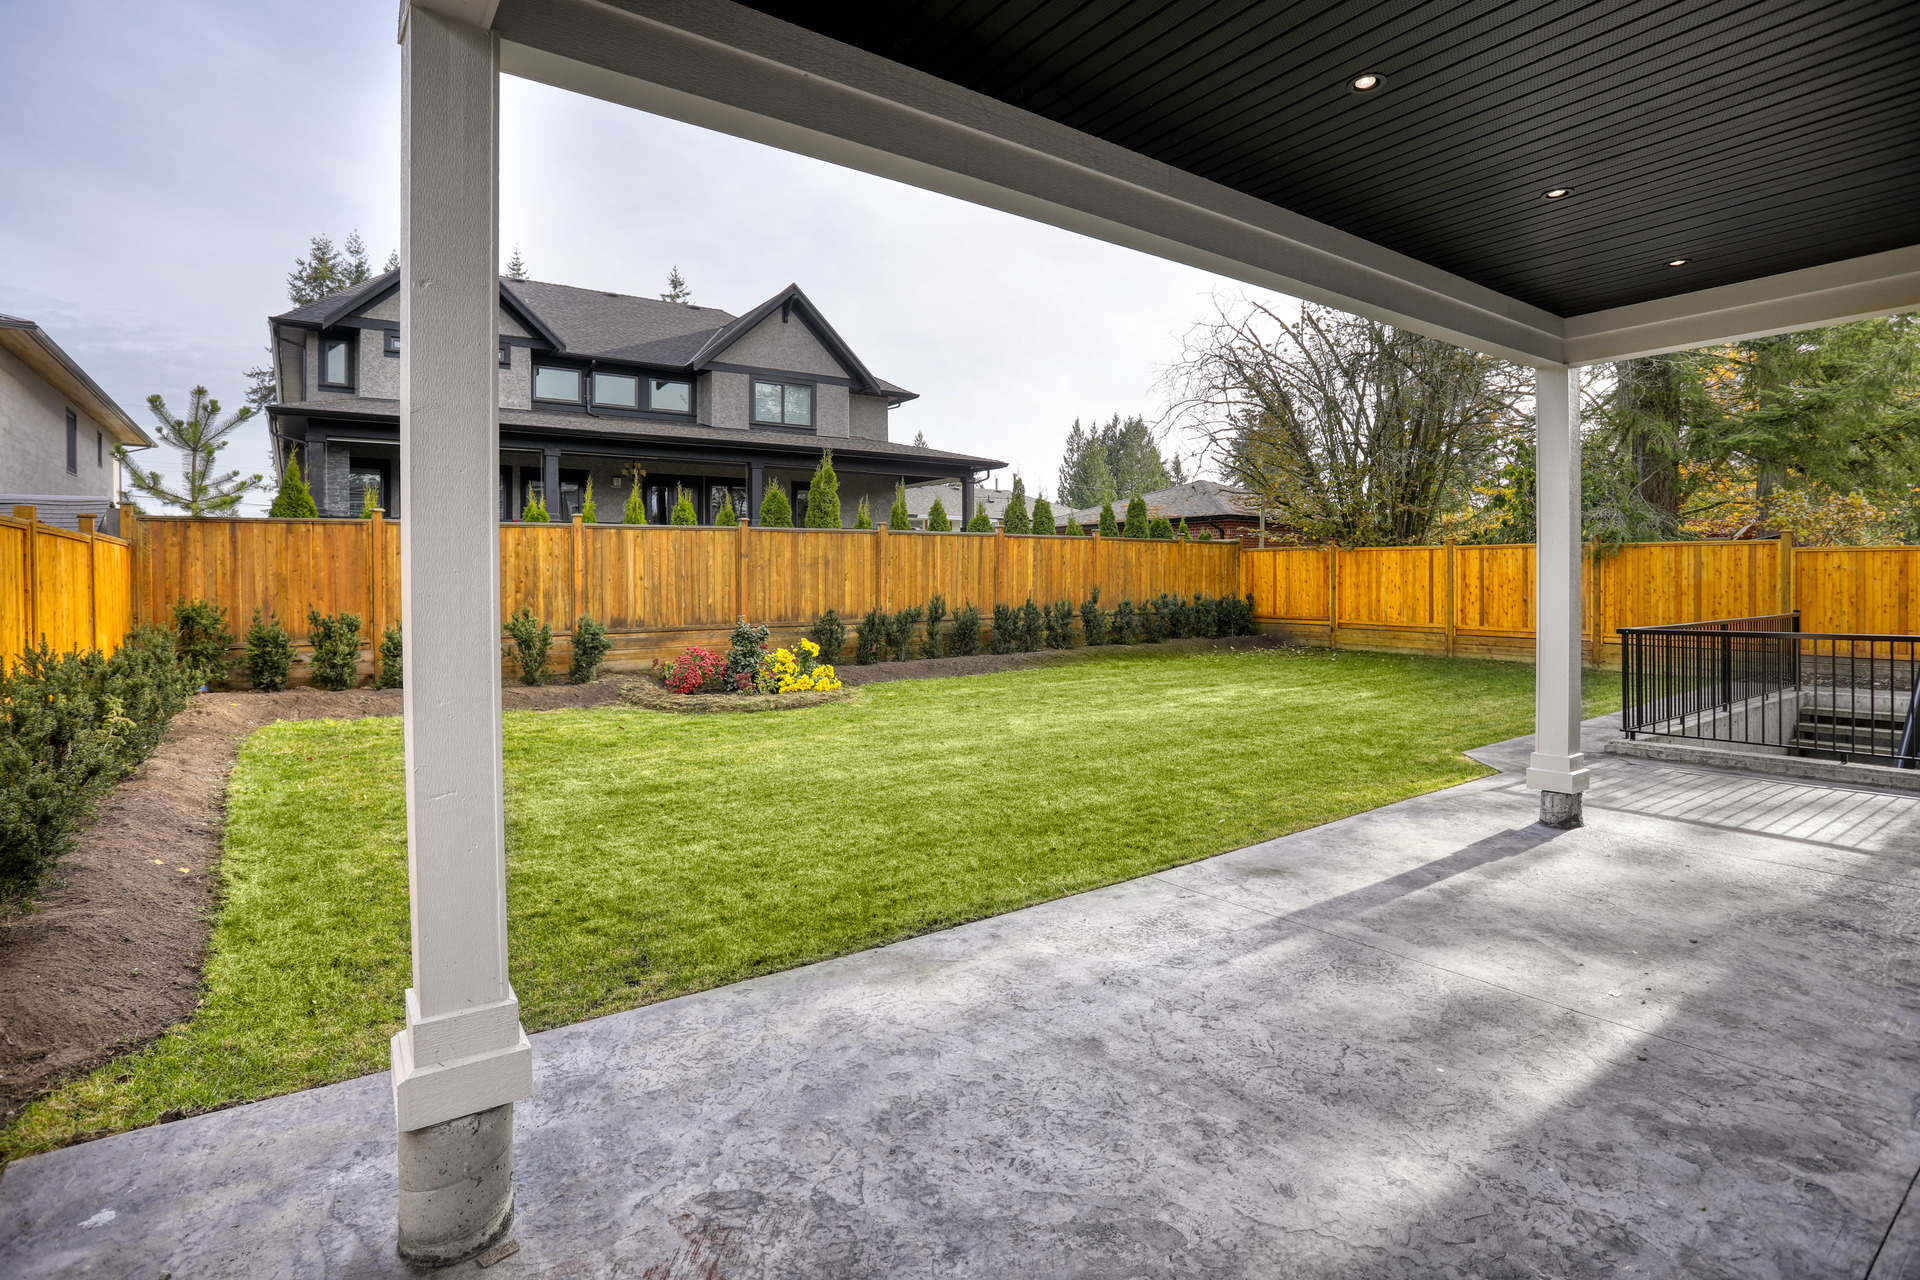 jd4 at 933 Jarvis Street, Harbour Chines, Coquitlam